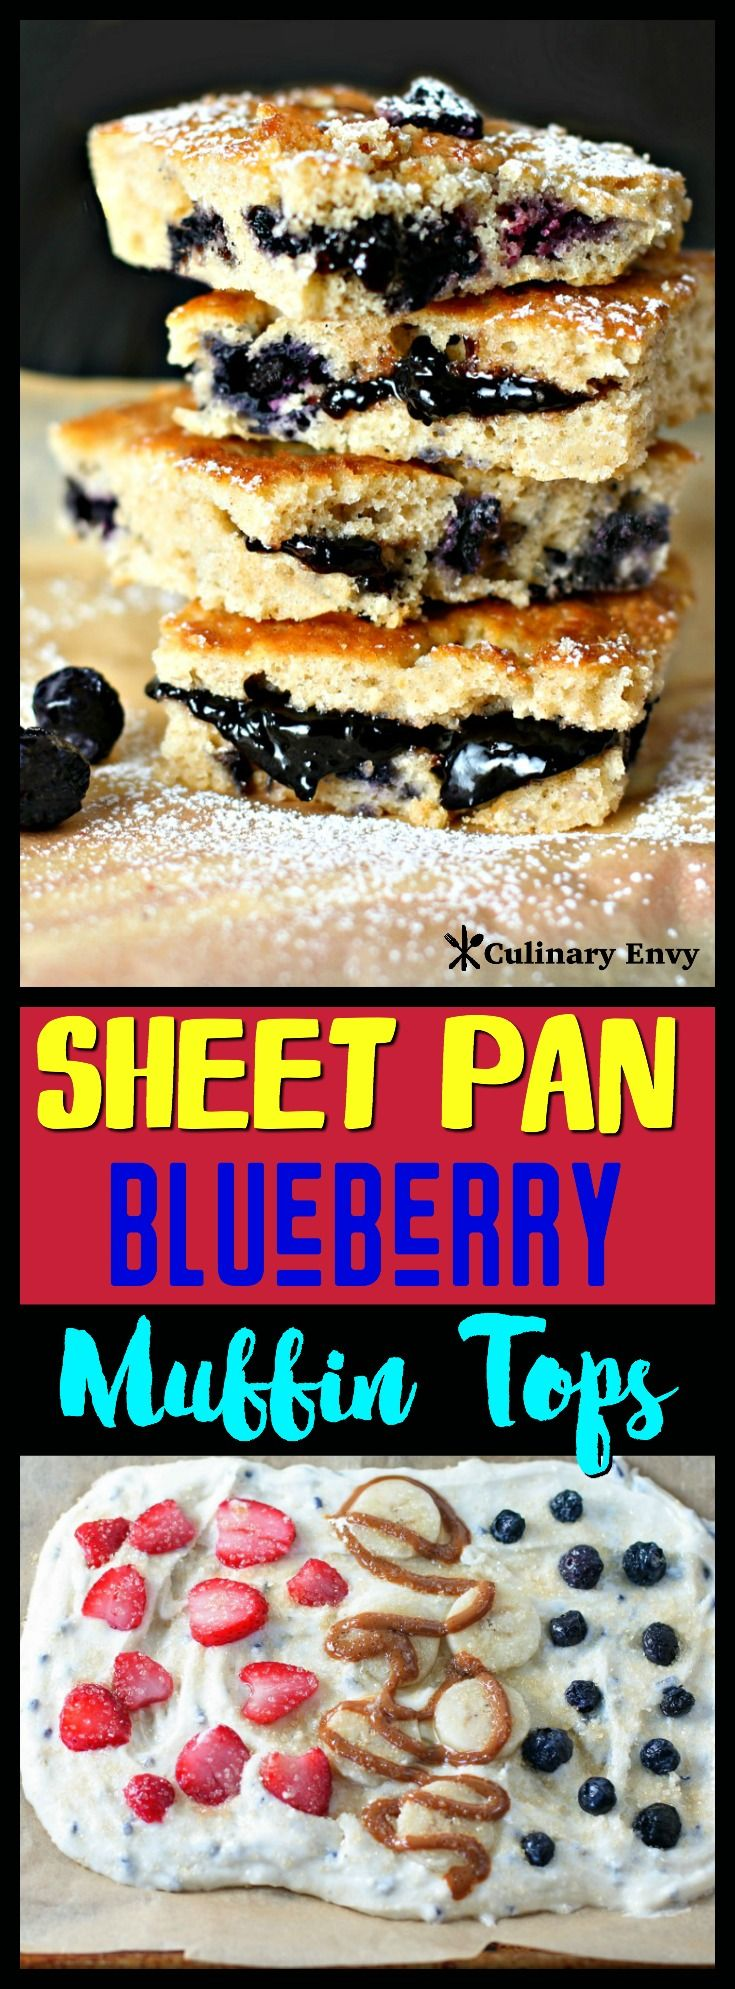 You won't need any muffin top pans for these quick and easy Sheet Pan Blueberry Muffin Tops. You use a baking sheet to get the best part of these scrumptiously moist breakfast muffins that are bursting with blueberries, have golden crispy edges and a sparkling sugar, buttery crust. Click to read more!